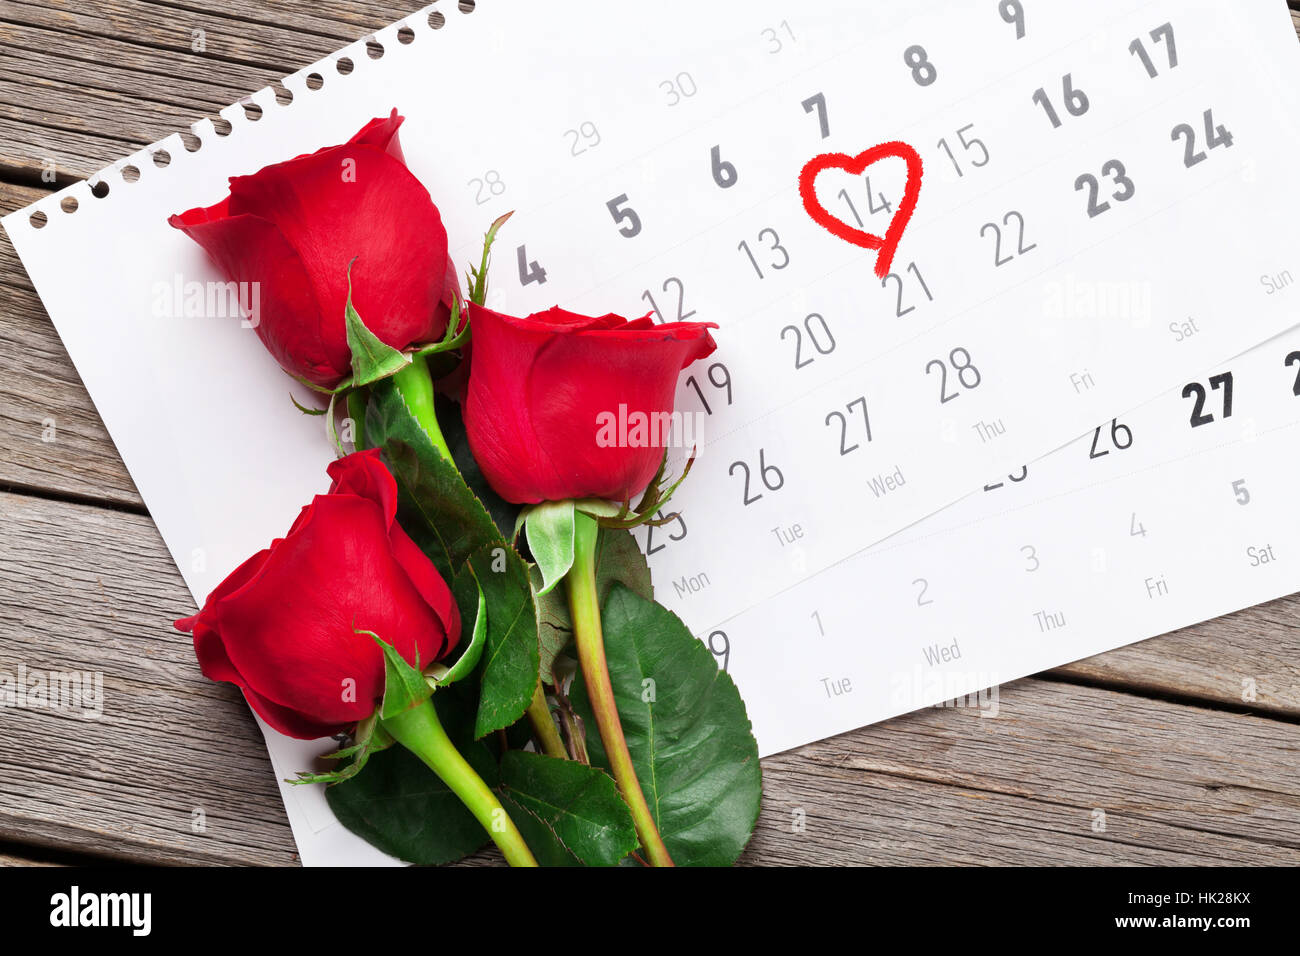 Beautiful flowers icon over white stock photos beautiful flowers valentines day greeting card red rose flowers over february calendar on wooden table top izmirmasajfo